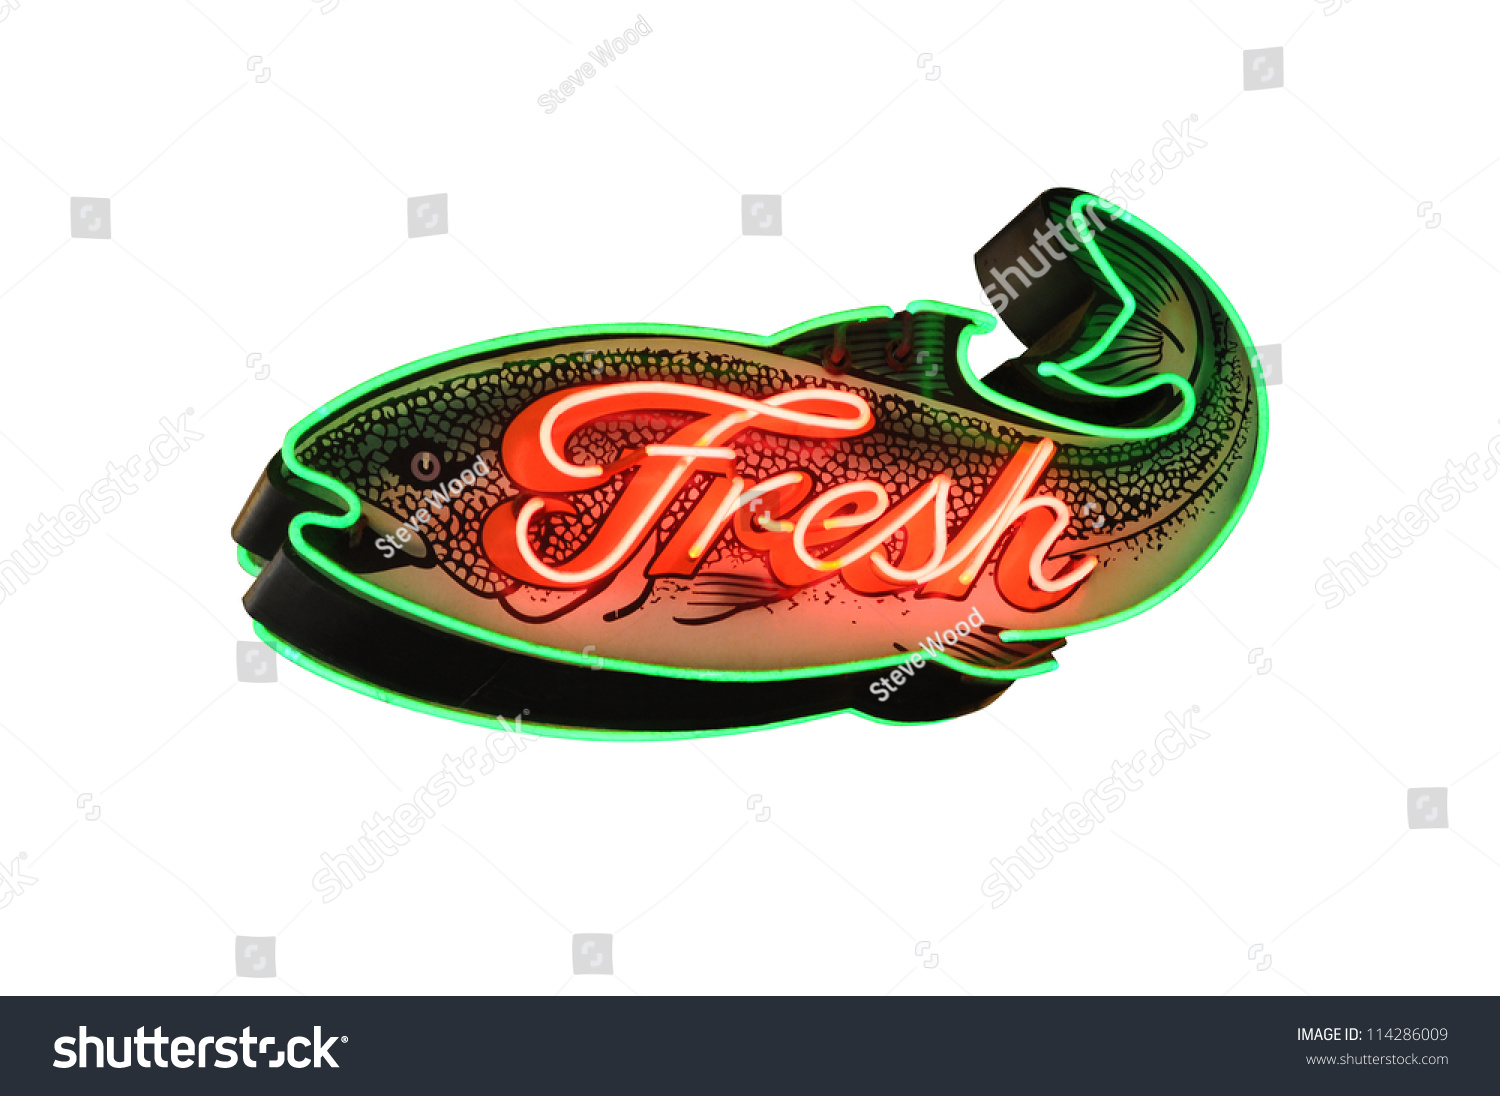 Fresh fish neon sign isolated on white stock photo for Fish neon sign